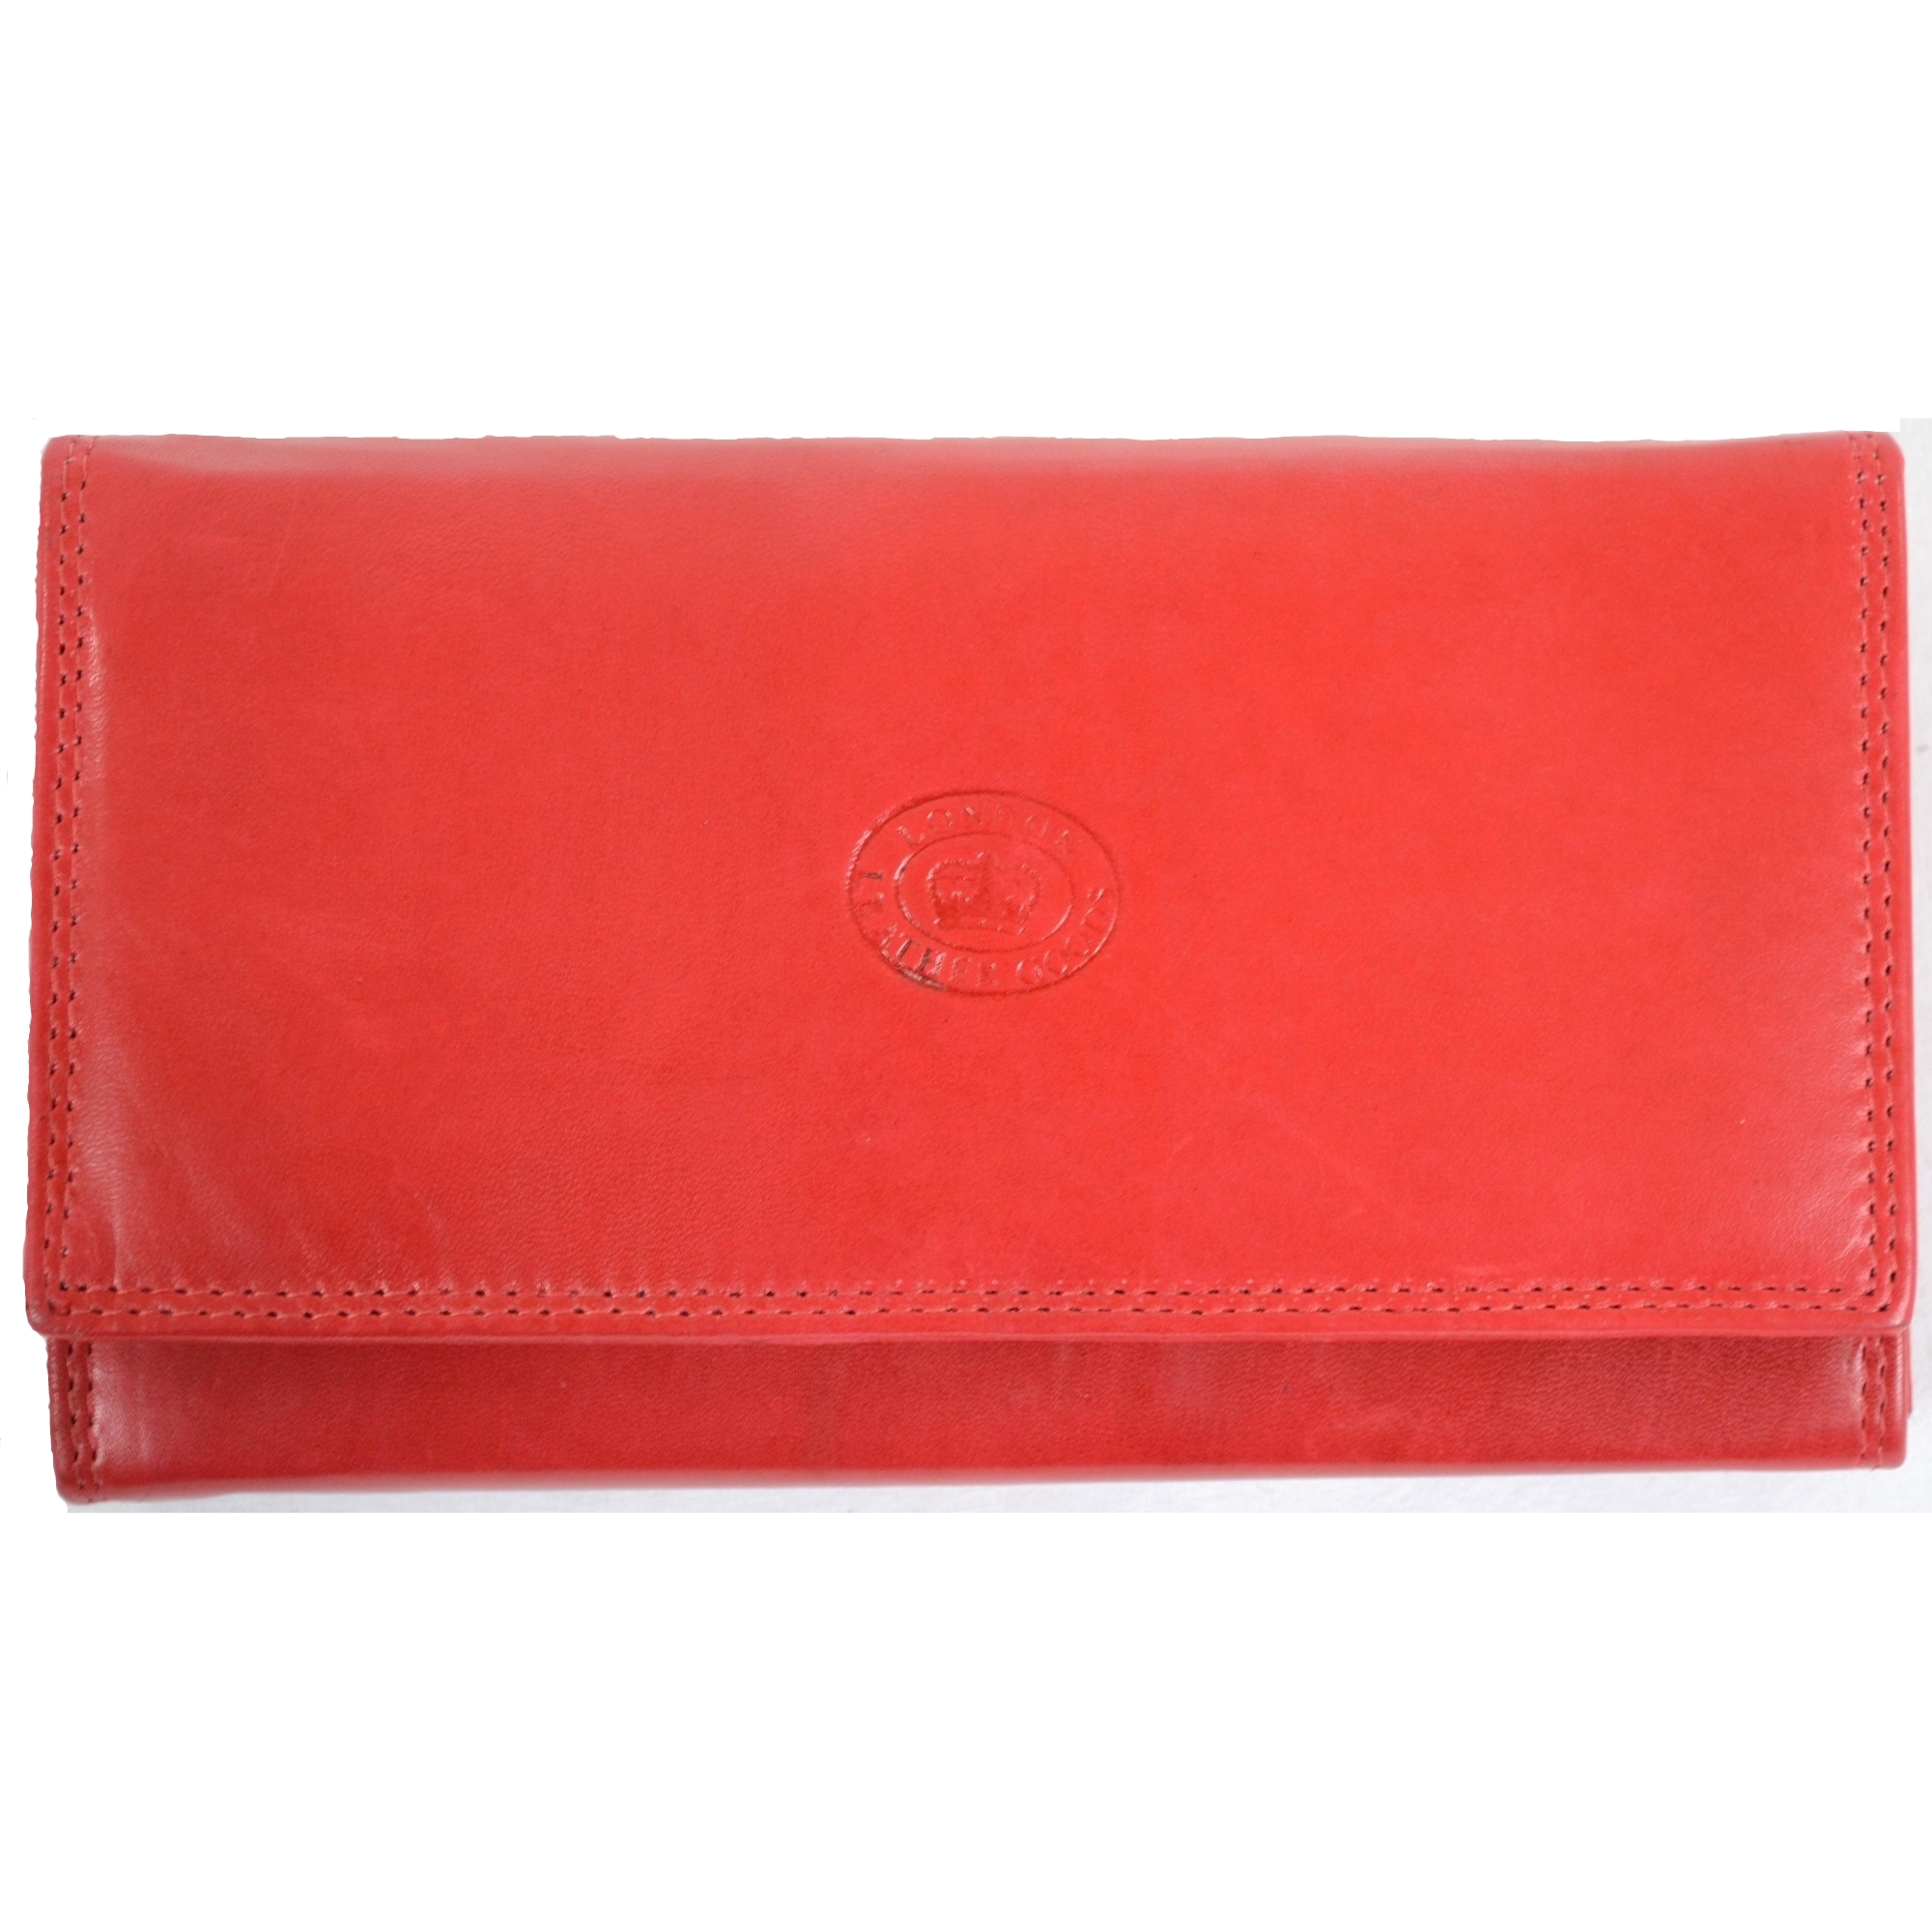 Nappa Leather Flap-Over Purse